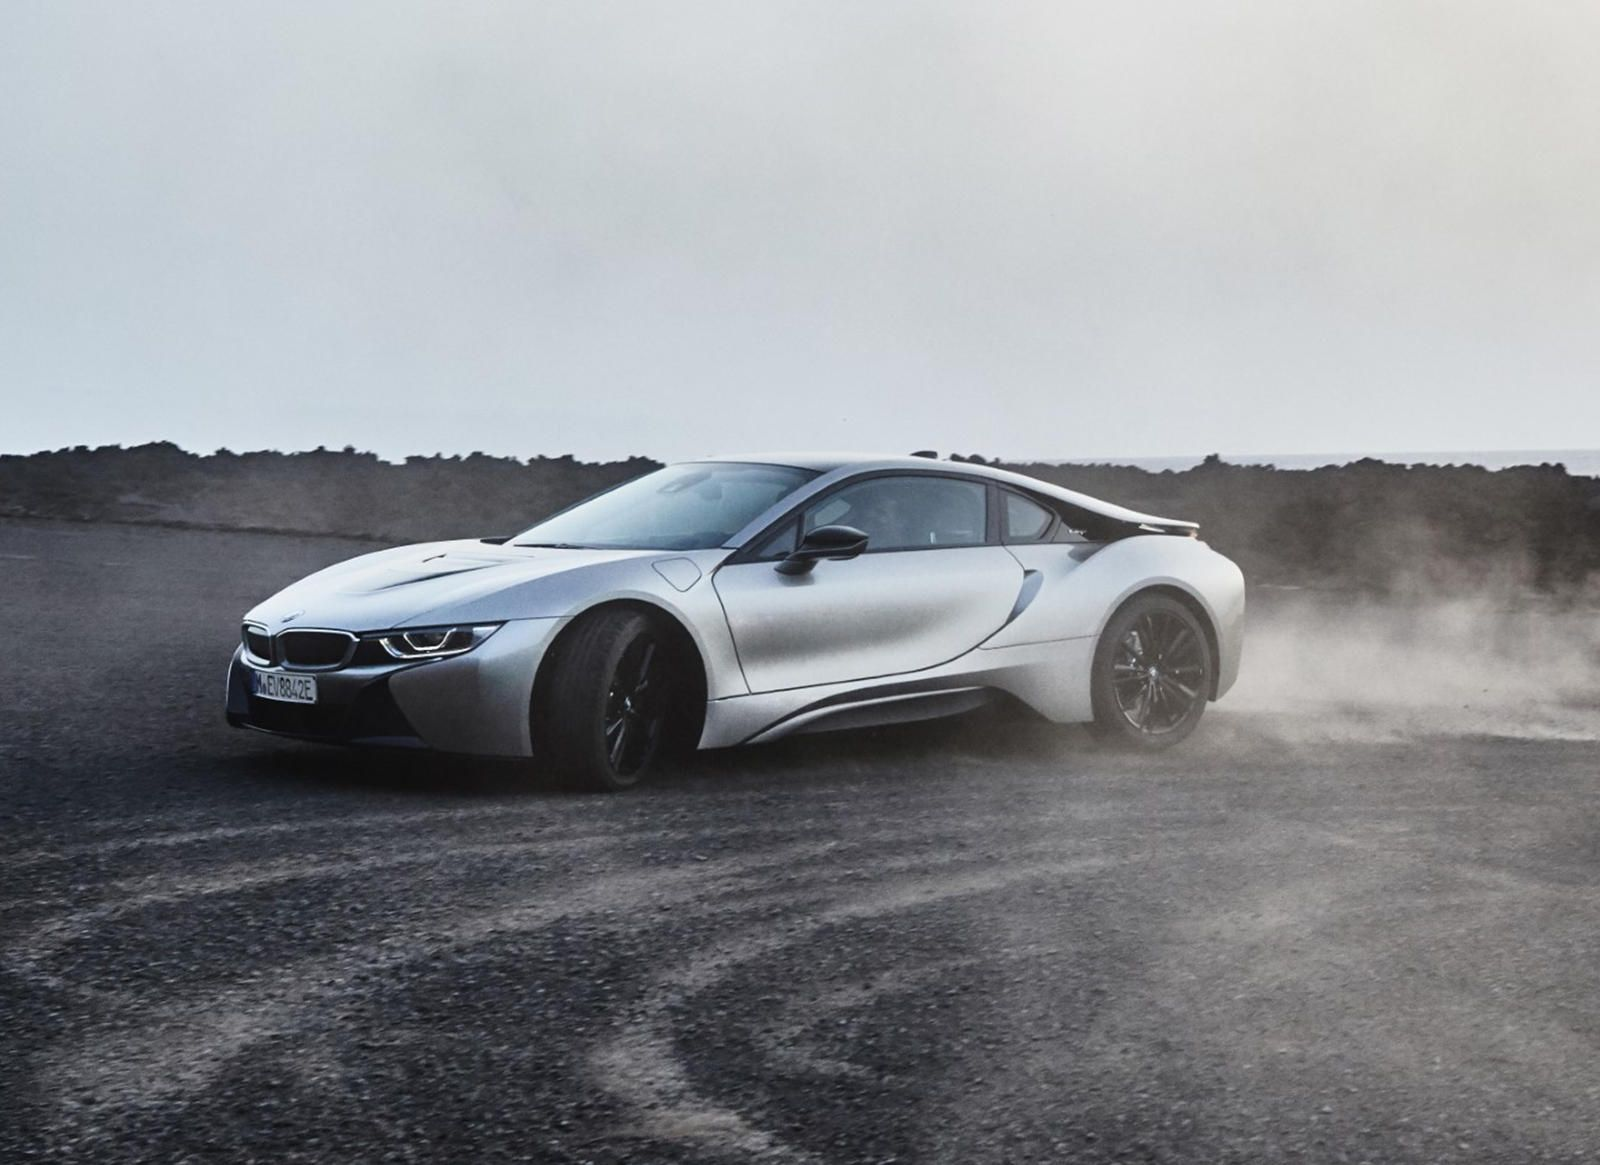 It's Finally Time To Say Goodbye To The BMW i8. The hybrid